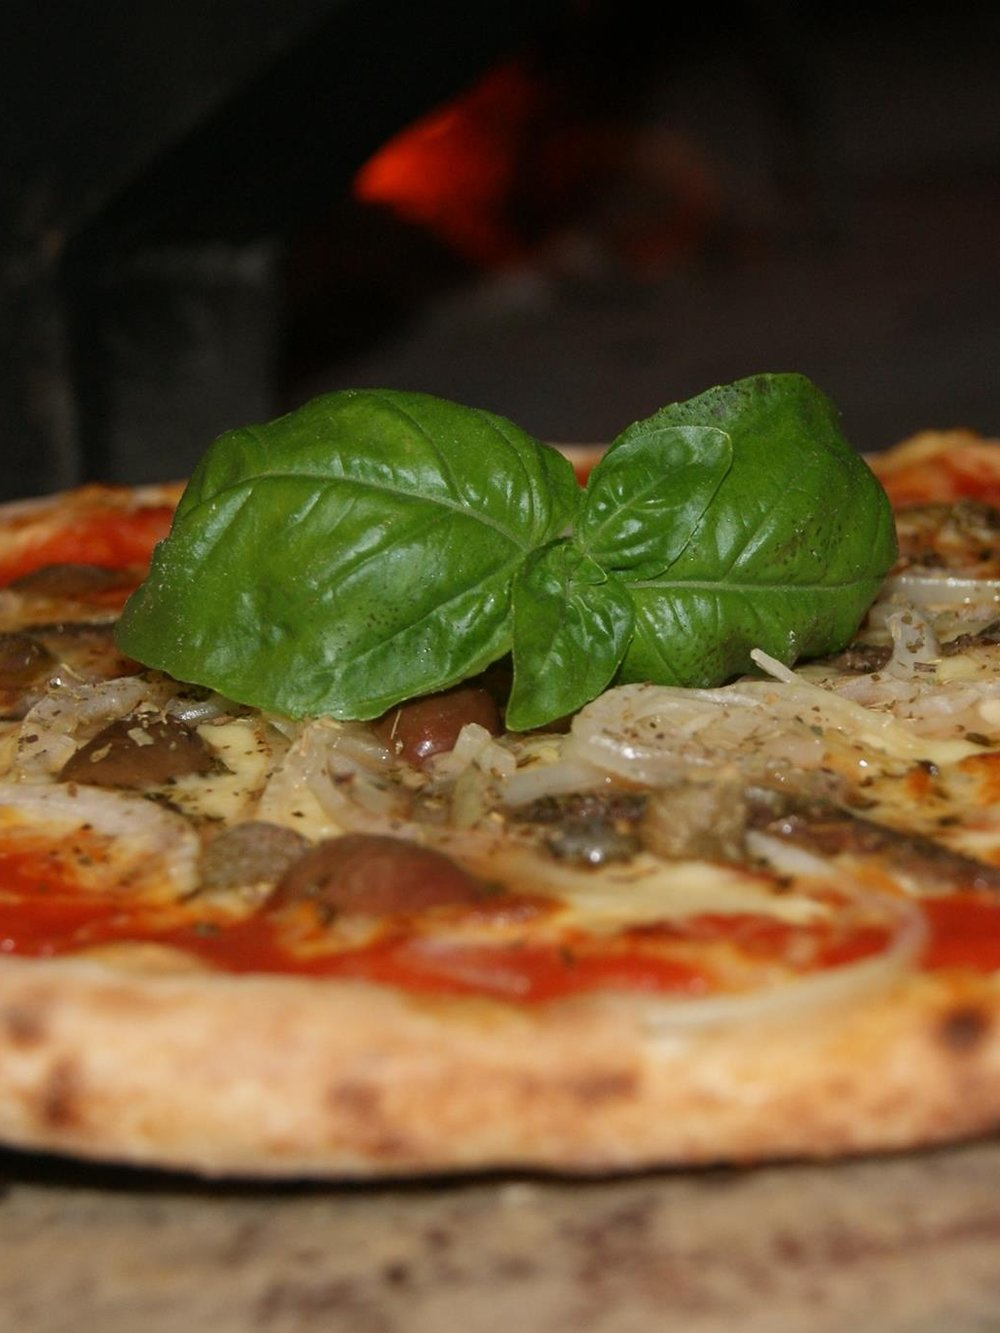 STUMPY'S PIZZA - Wood fired mediterranean pizza that is easy to share